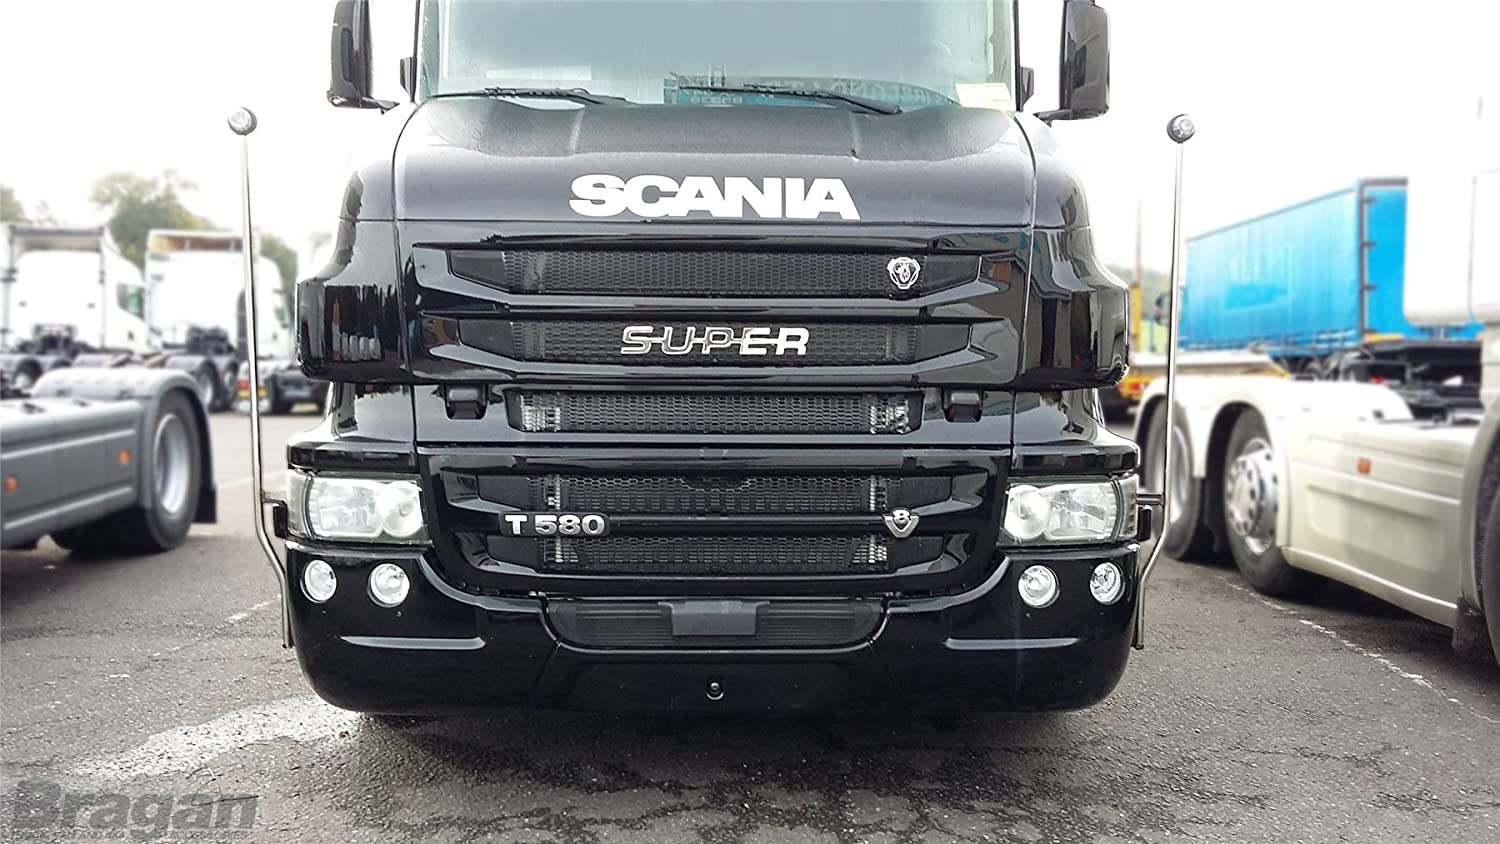 SCANIA R SERIES Stainless Steel Chrome R 520 Polished Number Cover Grill Model Badge